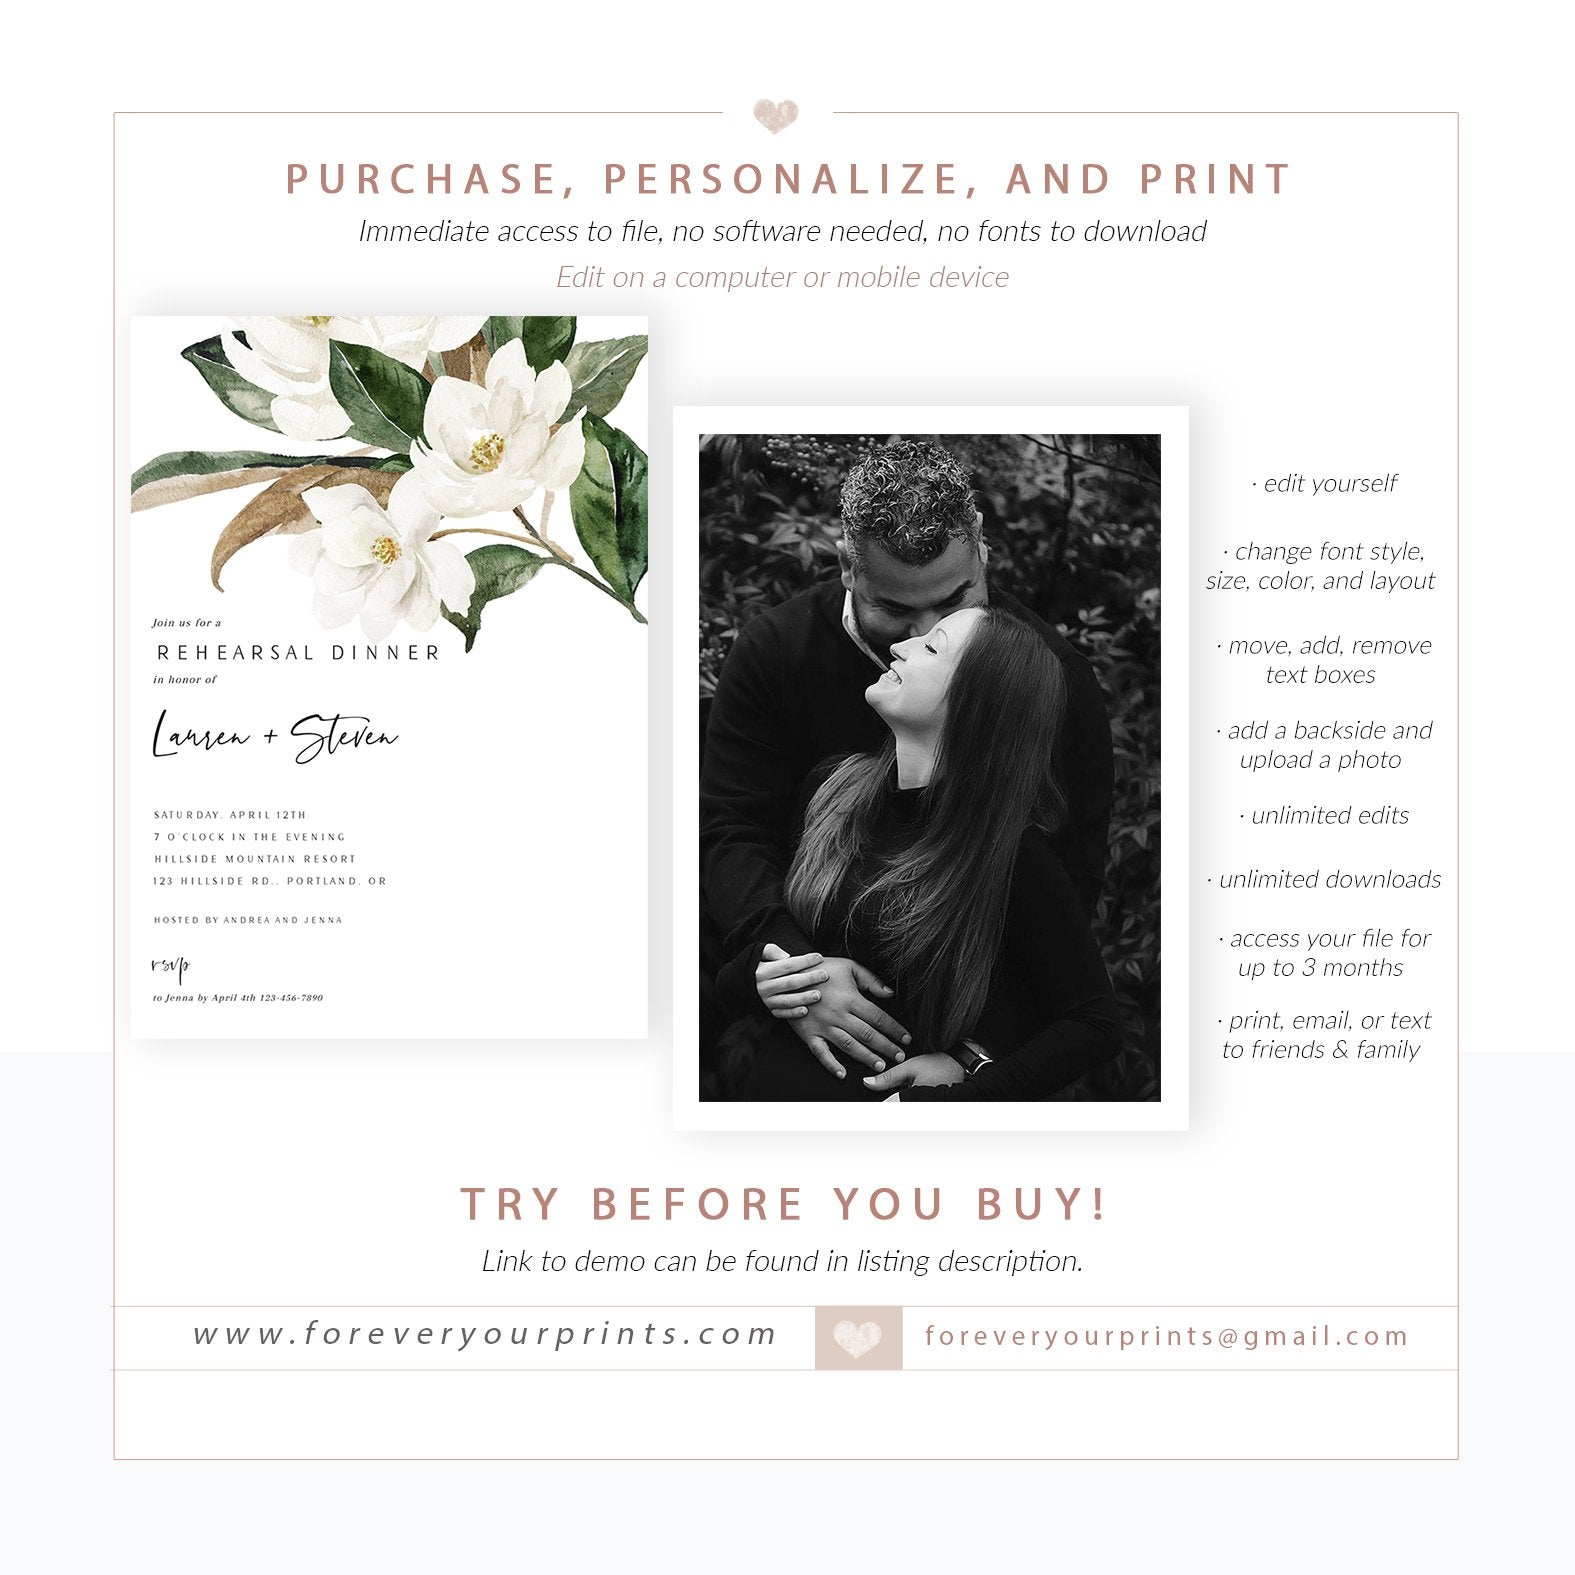 Cocktail Party Southern Engagement Bridal Brunch New Orleans Rehearsal Dinner. Printed Magnolia Flower Invitations Couples Shower